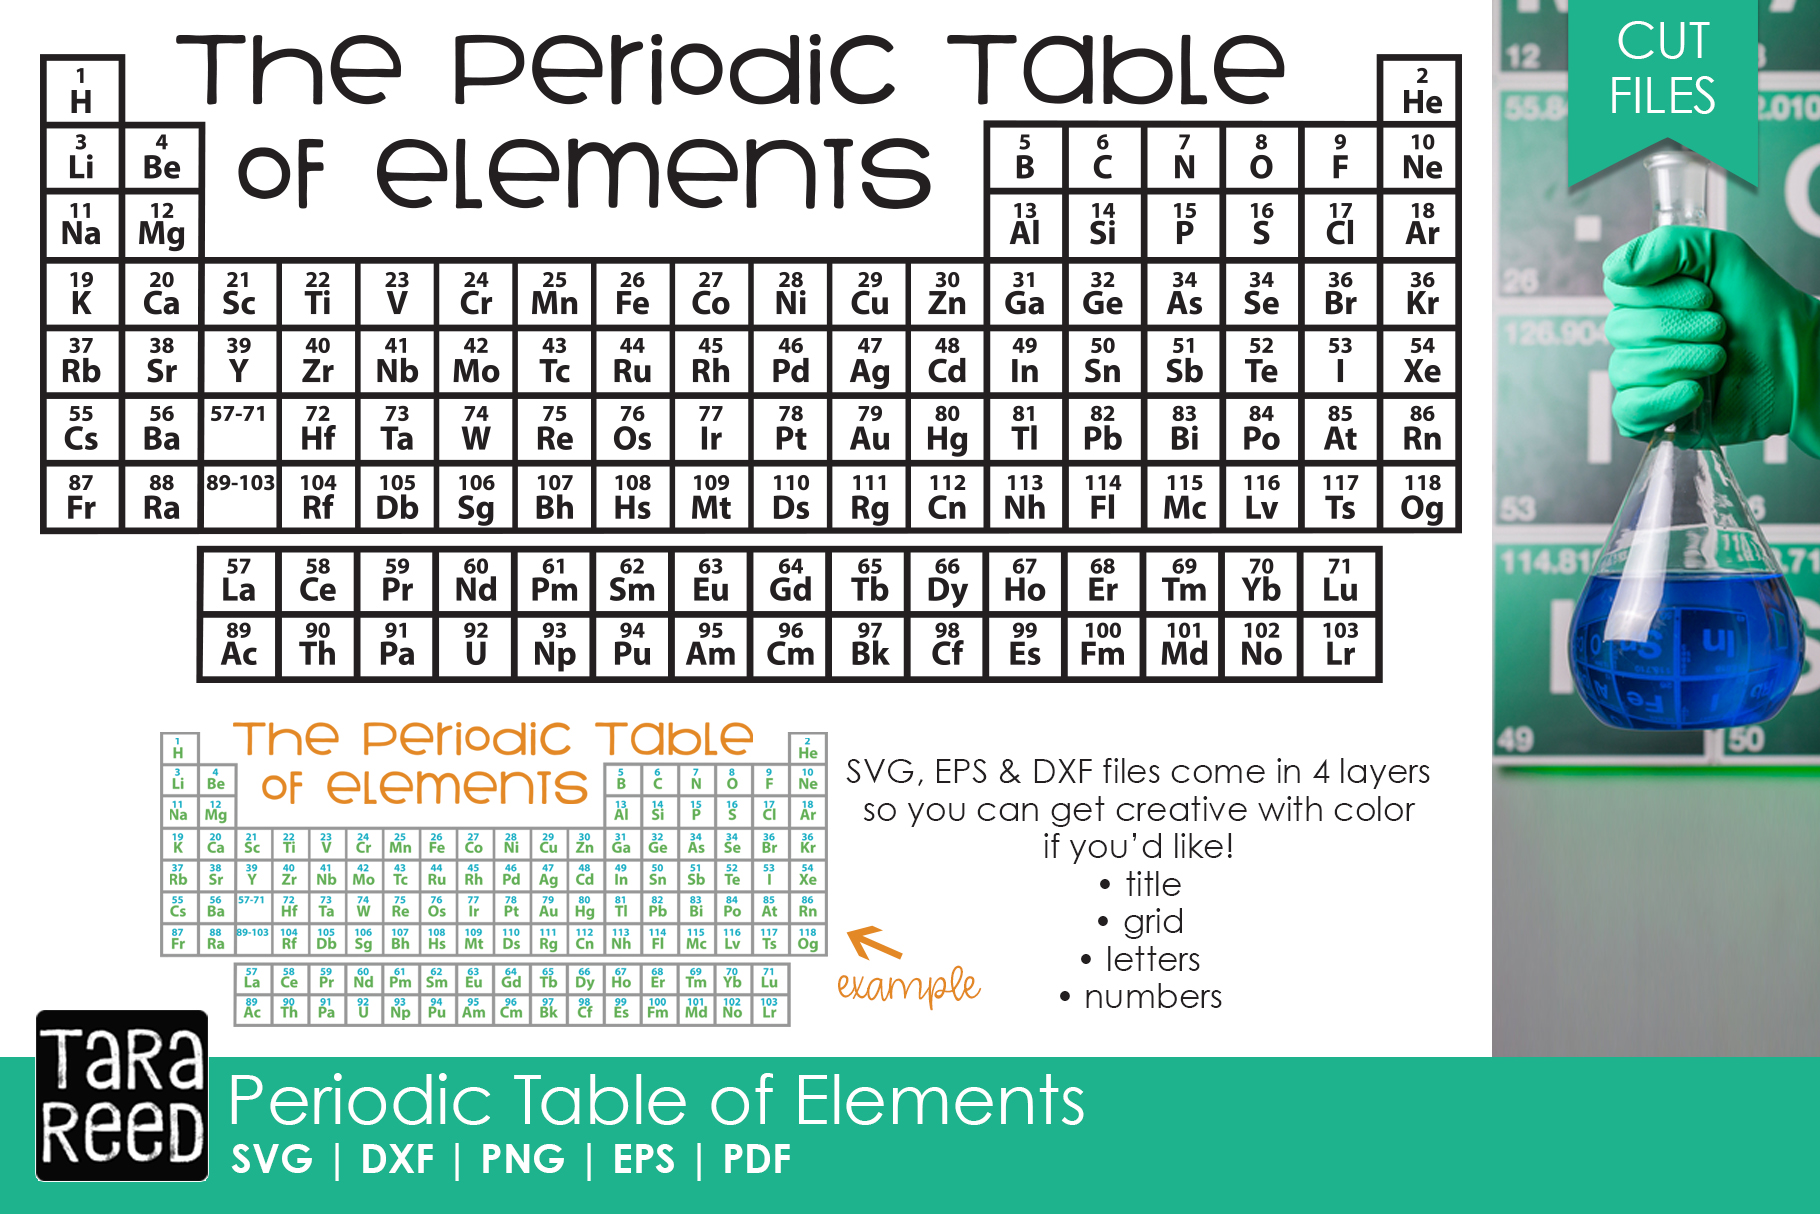 Periodic Table of Elements - Chemistry Cut Files for Crafter example image 1